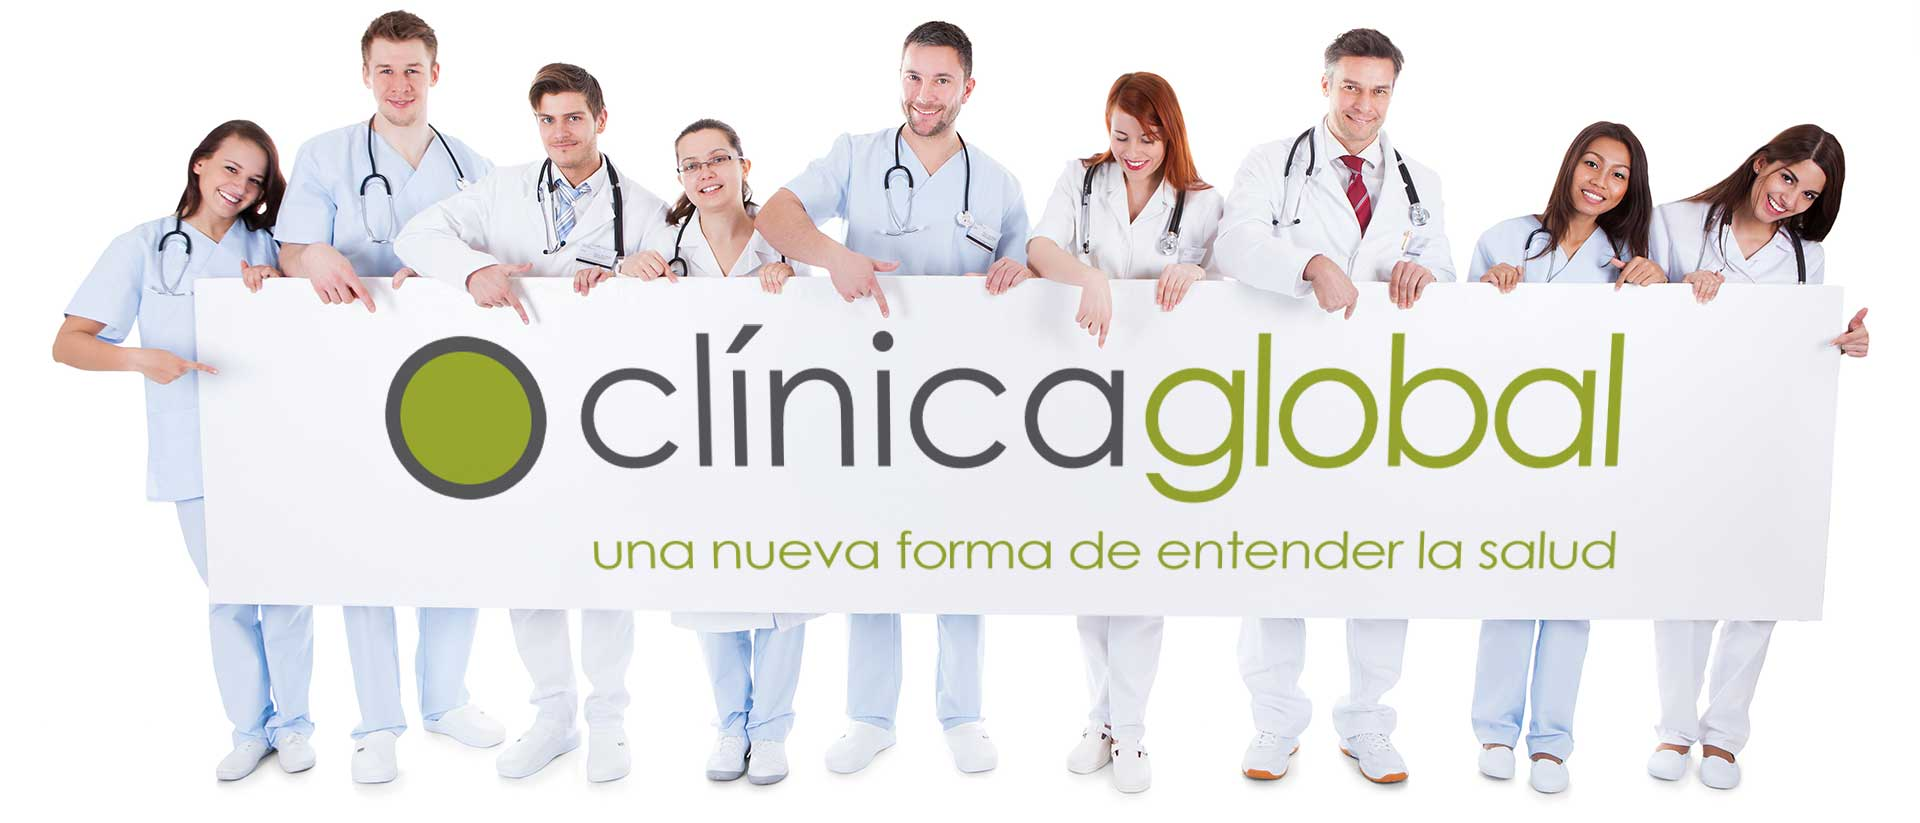 clinica-global-equipo